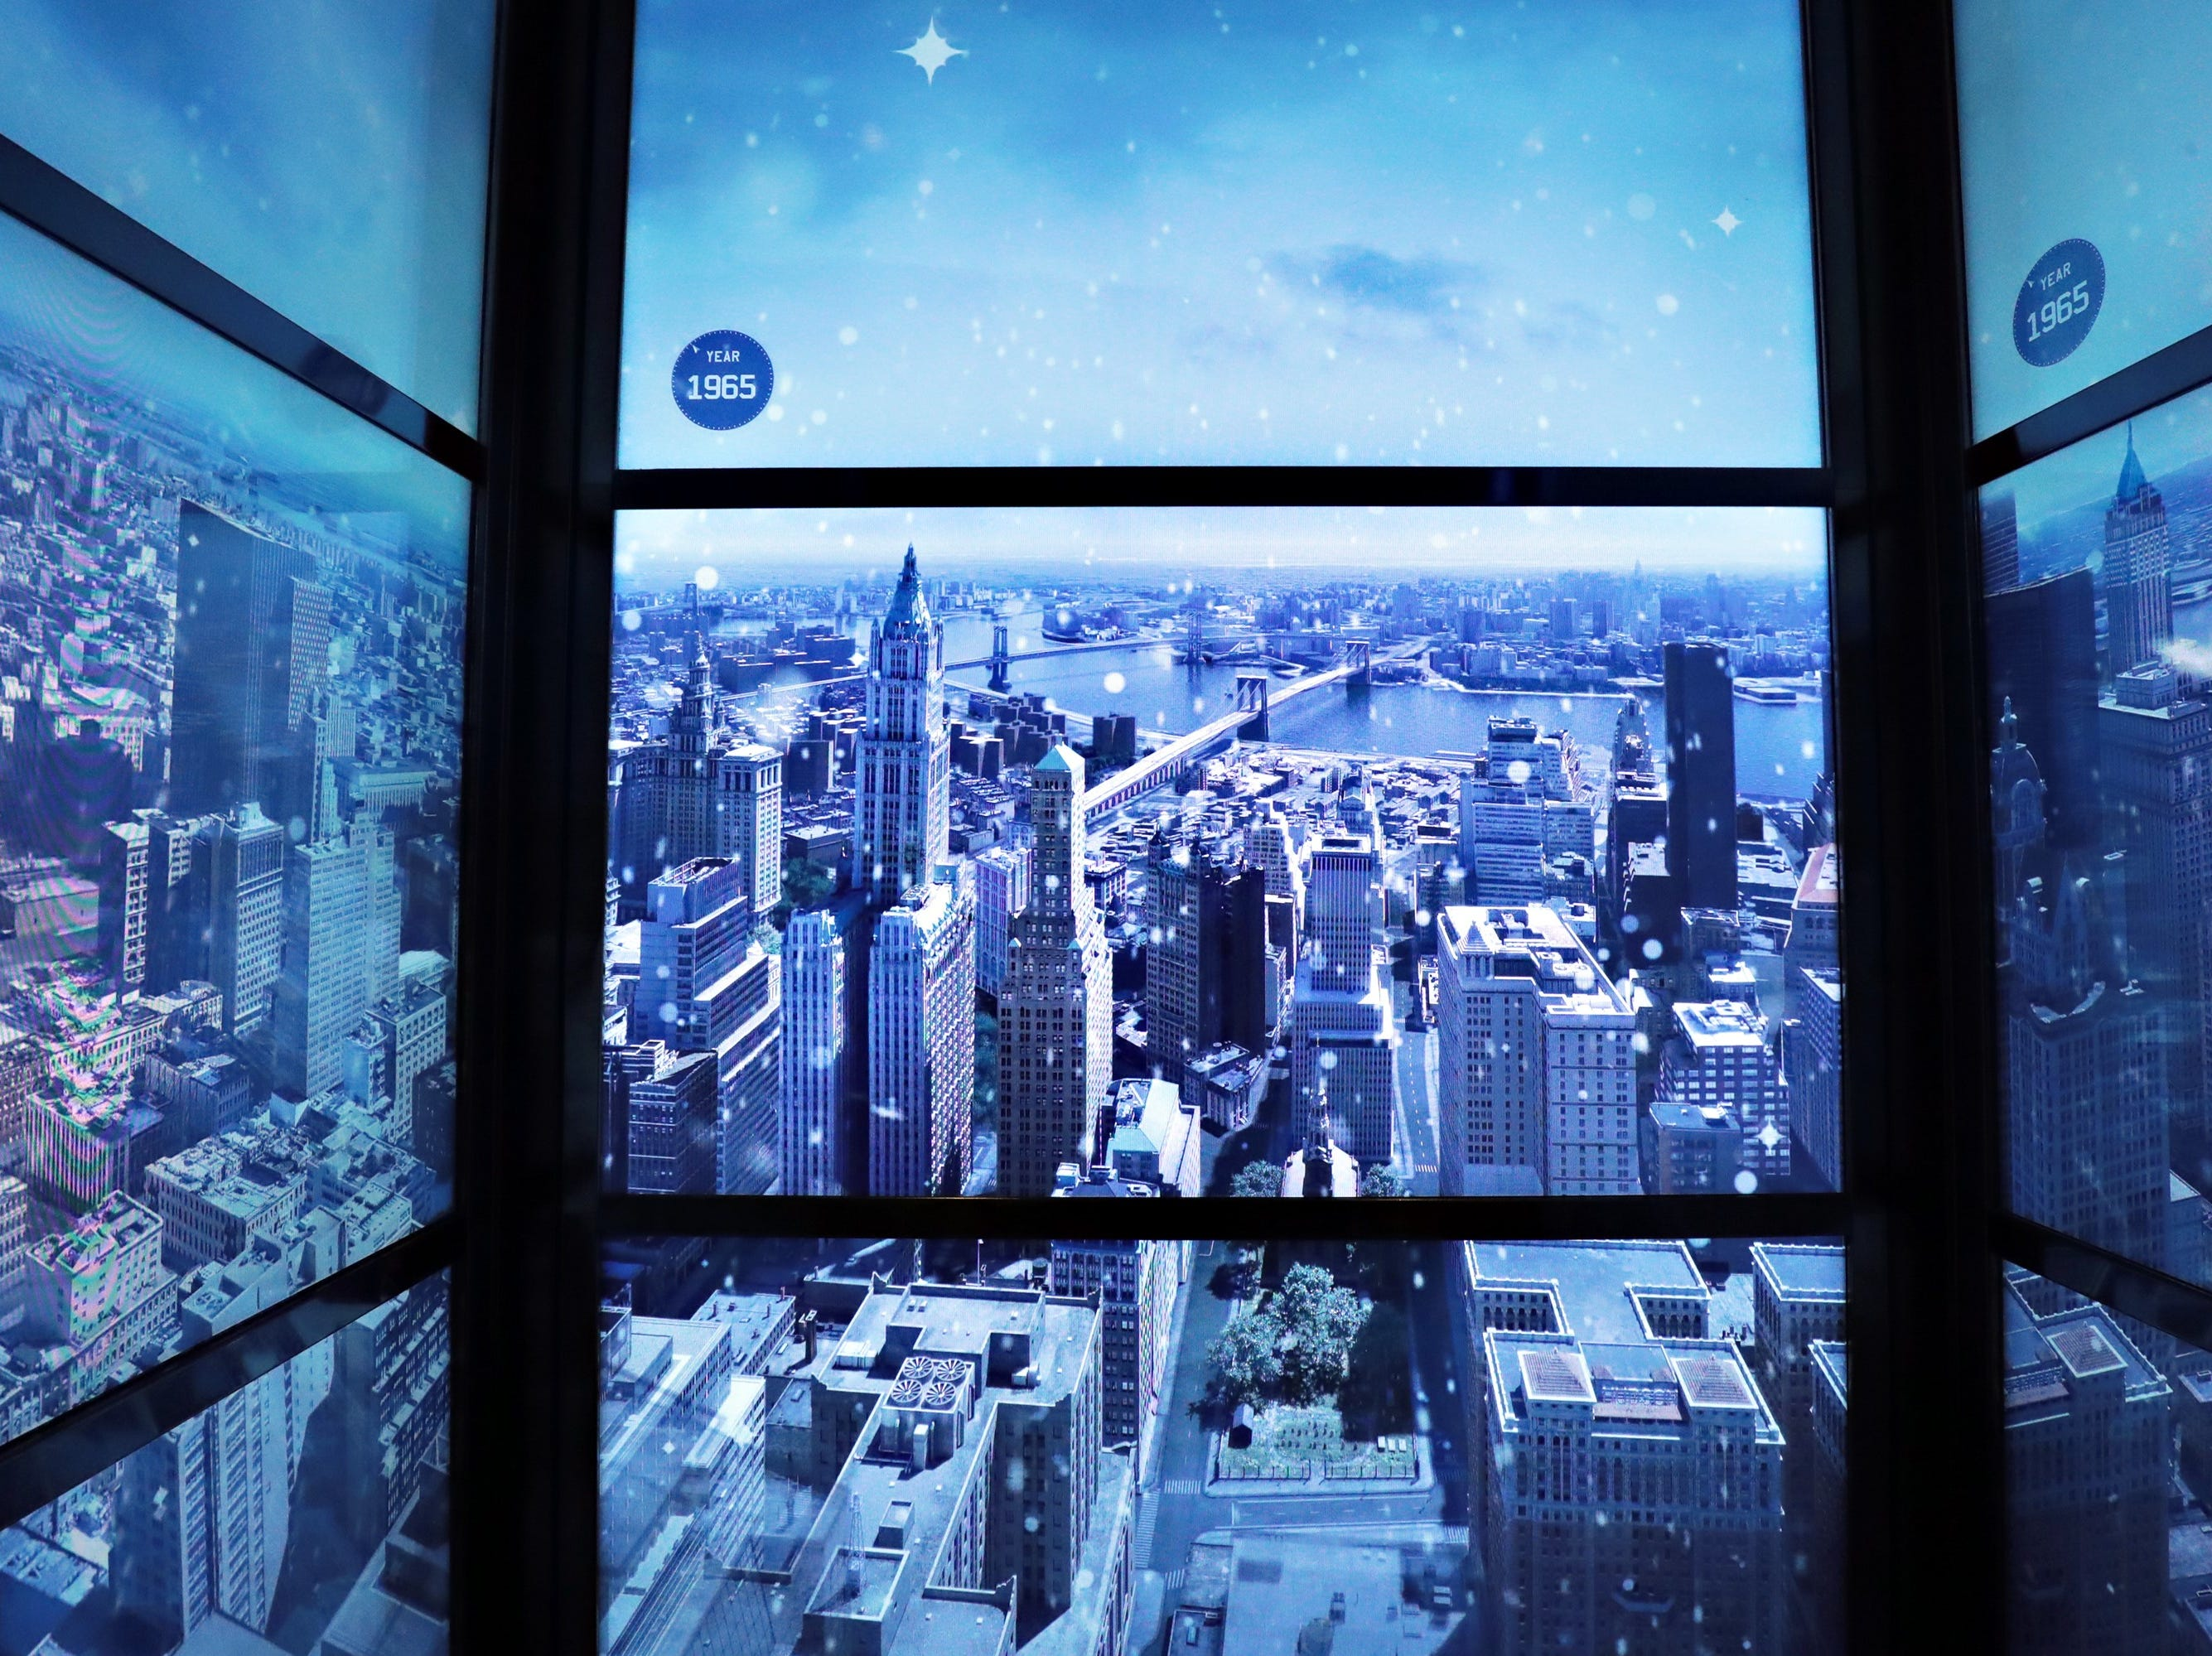 One of the best parts of visiting One World Observatory is watching the timeline in the Sky Pod elevator, decorated with snow for the holidays.